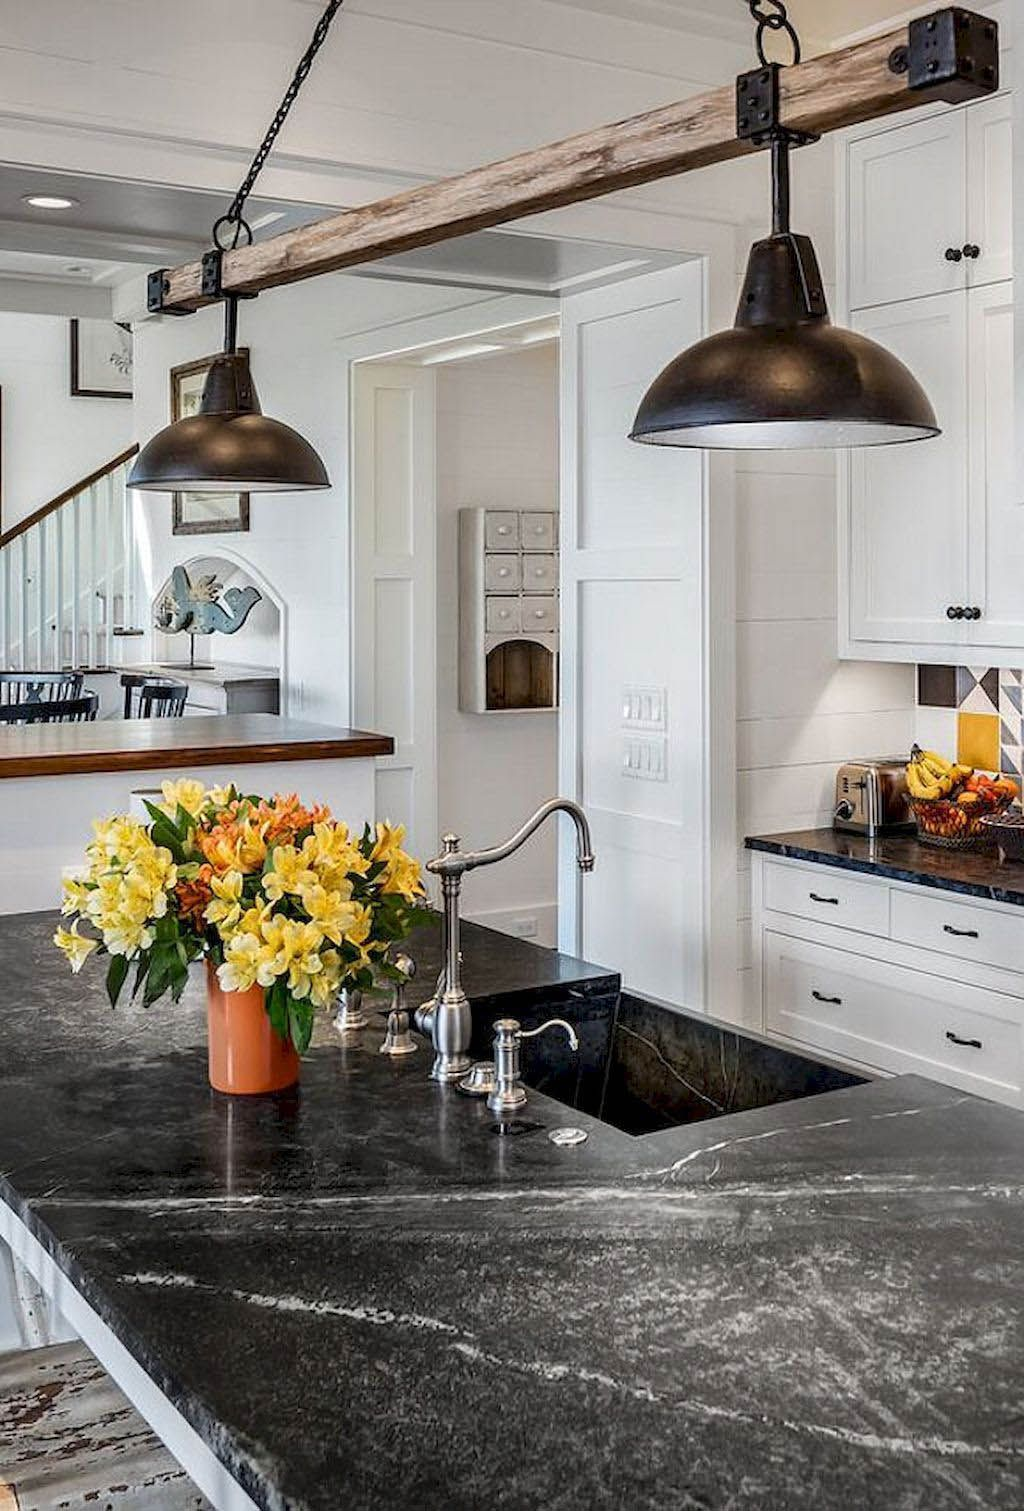 Stunning Kitchen Lighting Ideas For Your New Kitchen Kitchen Lighting Over Table Rustic Kitchen Lighting Rustic Kitchen